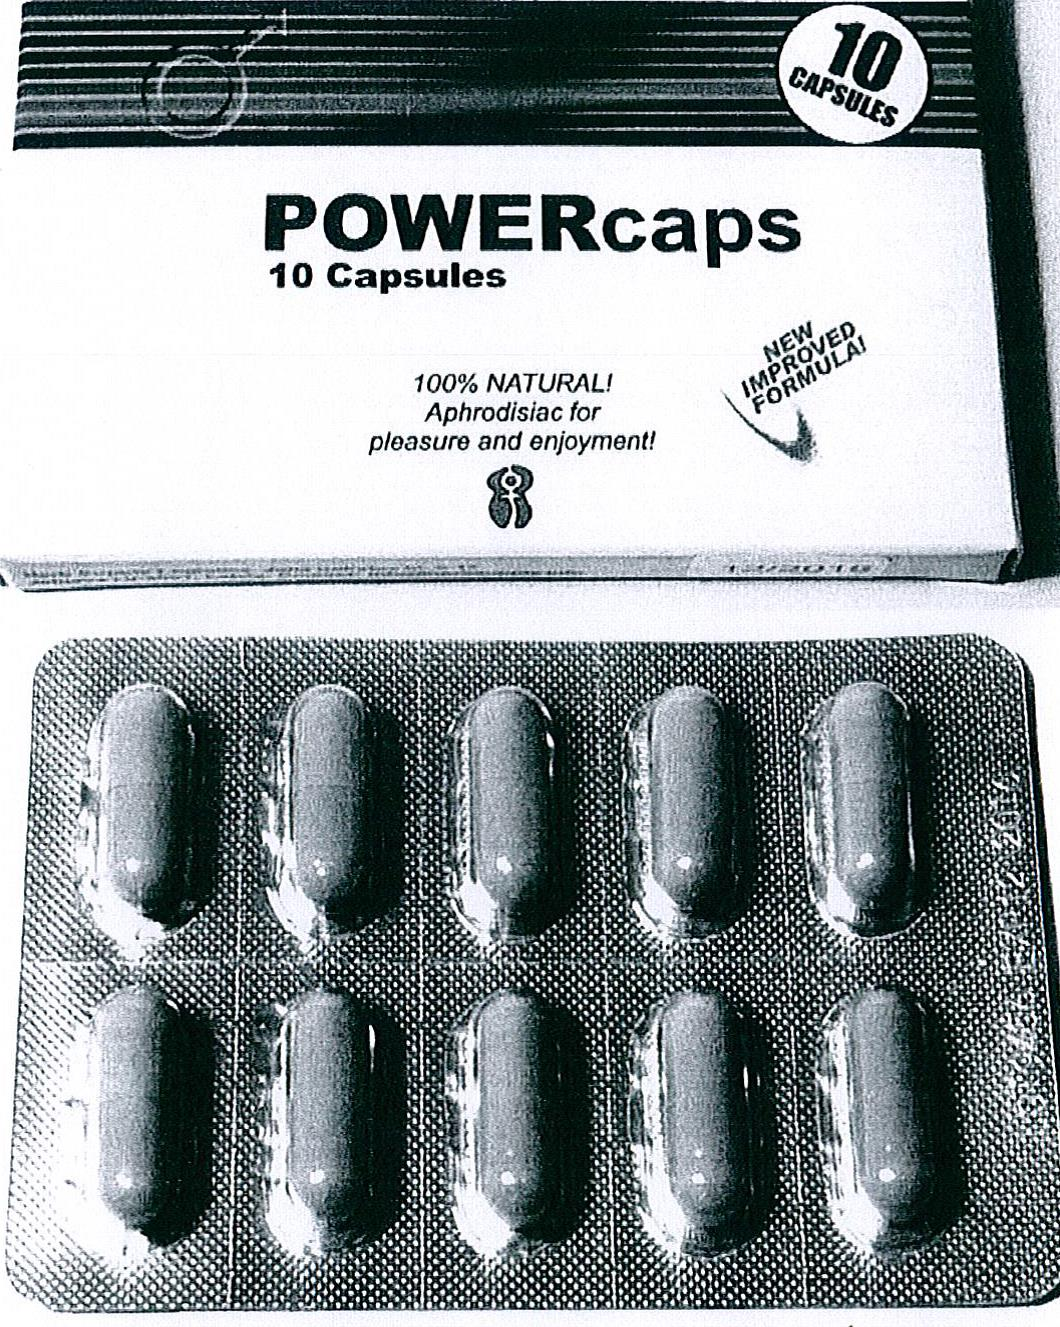 Image of the illigal product: Power Caps